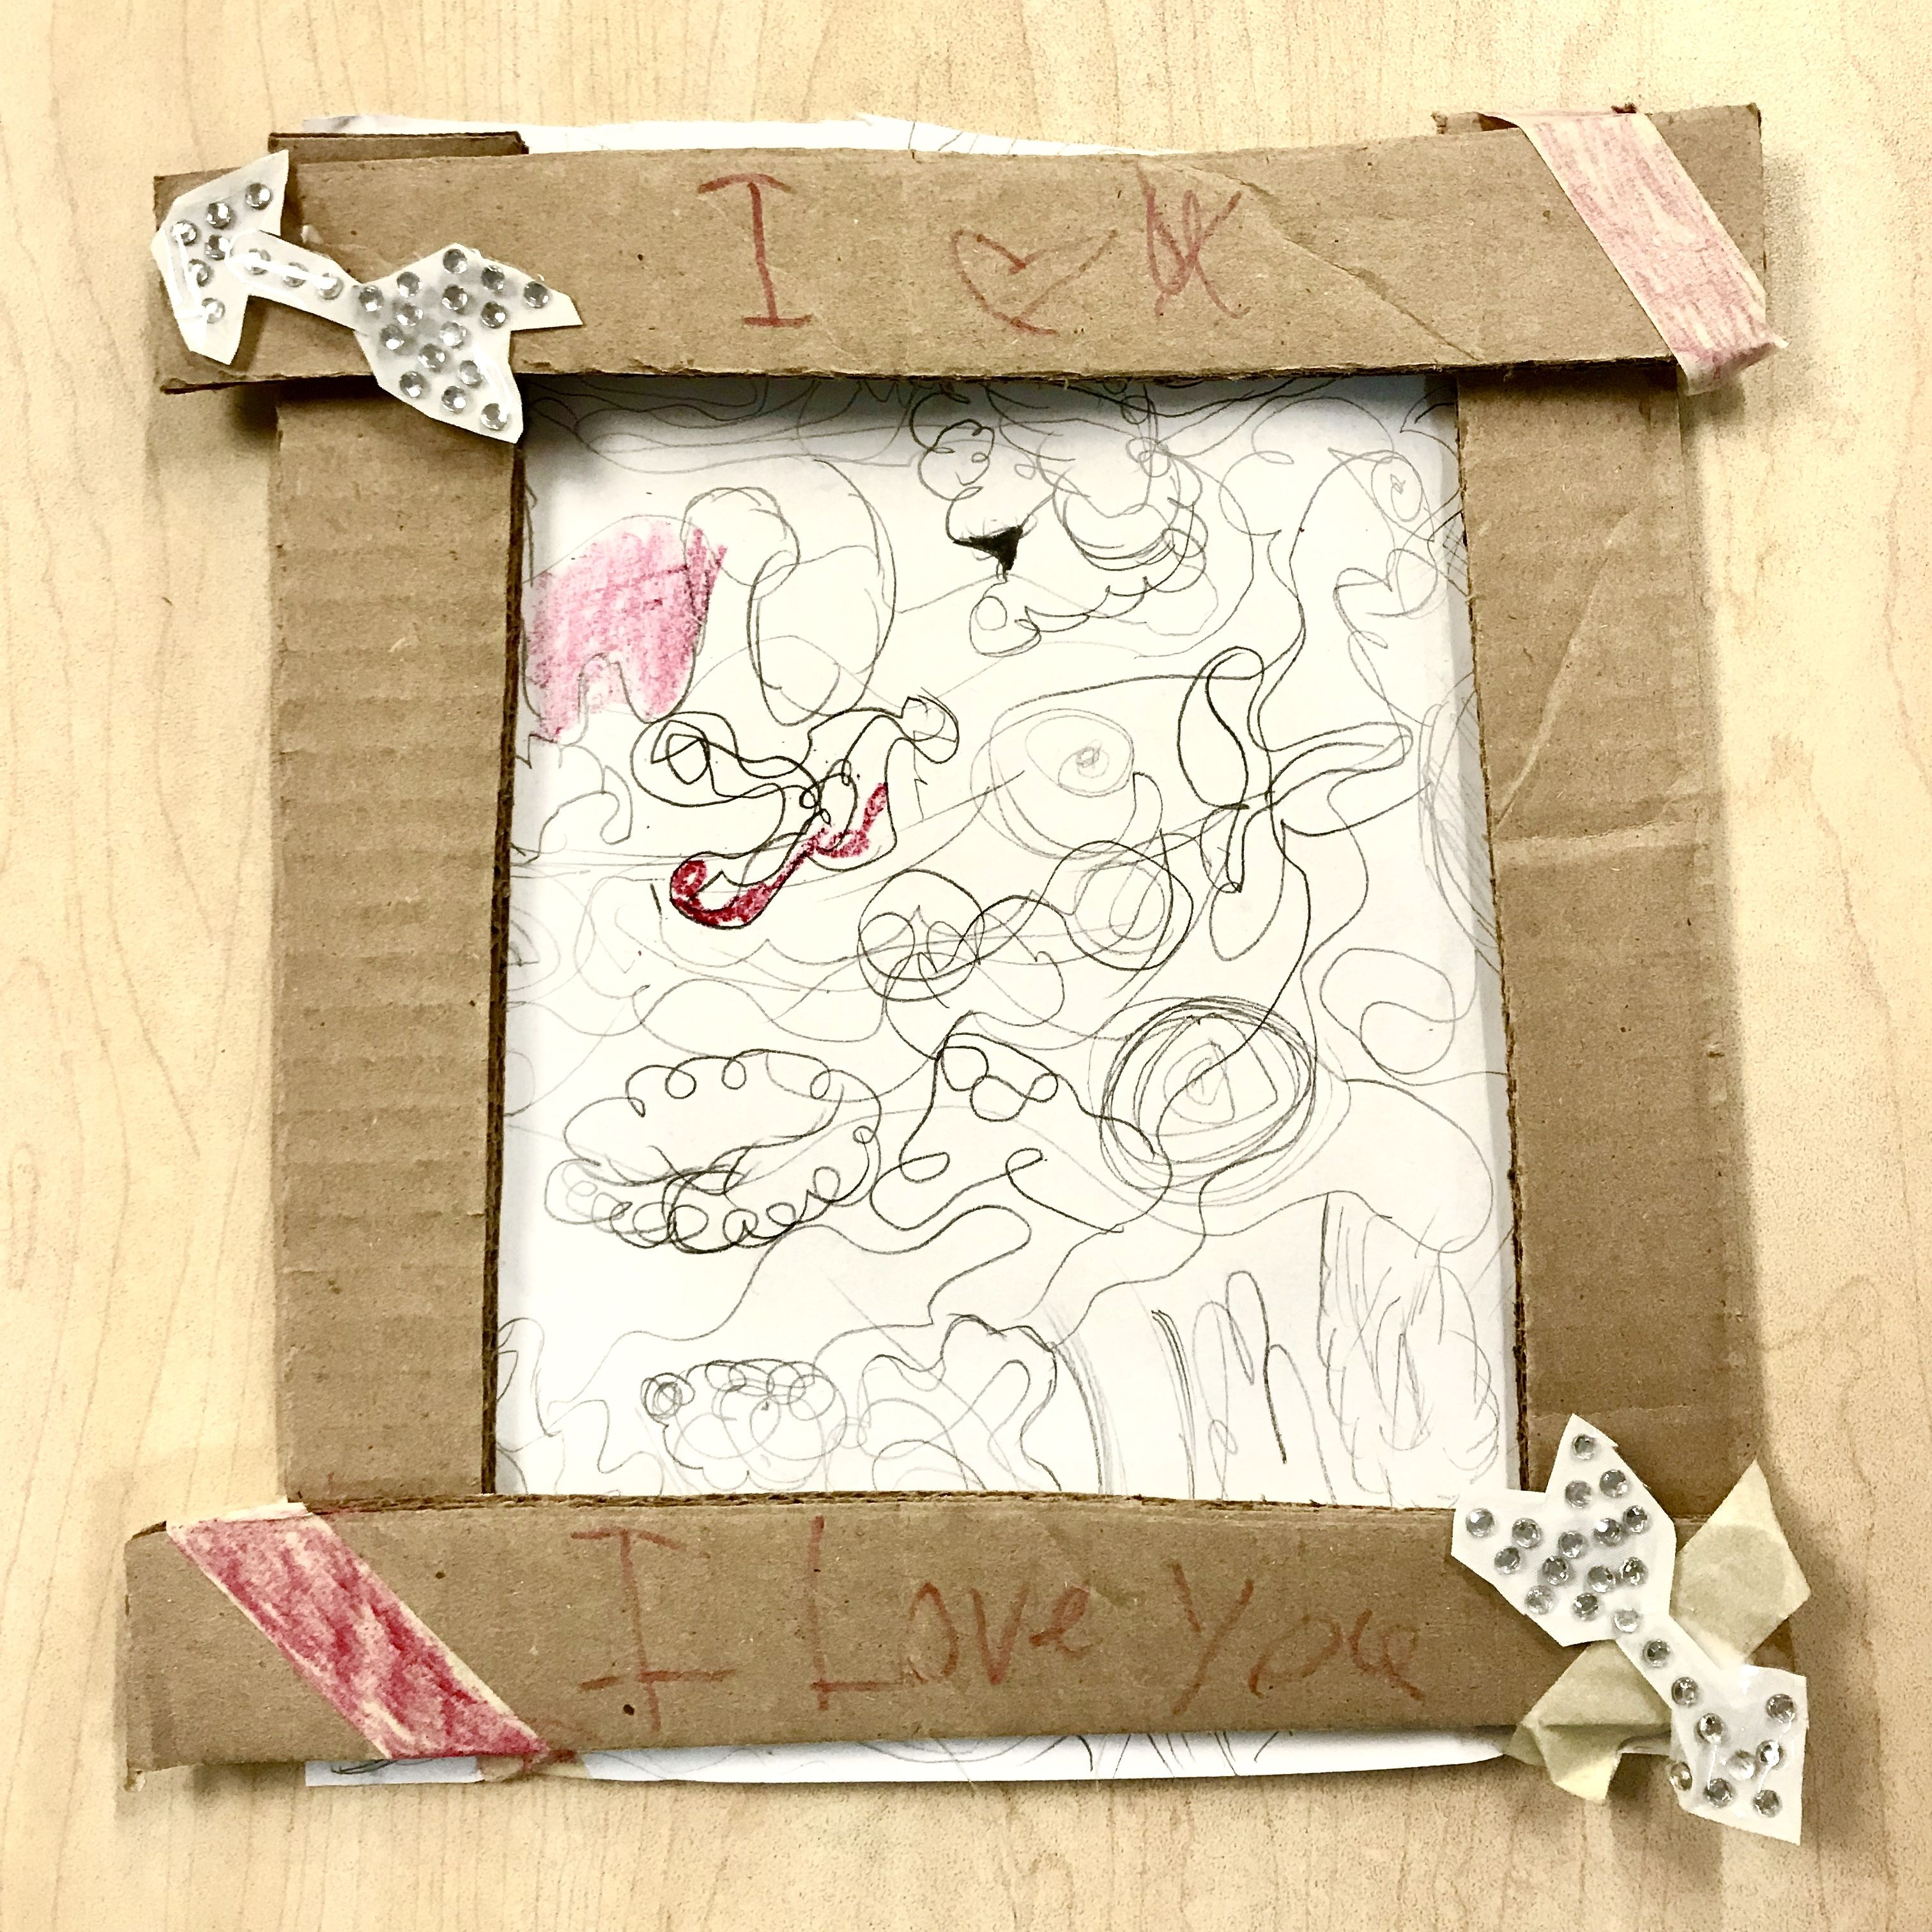 Student s cardboard sculpture of a homemade picture frame and